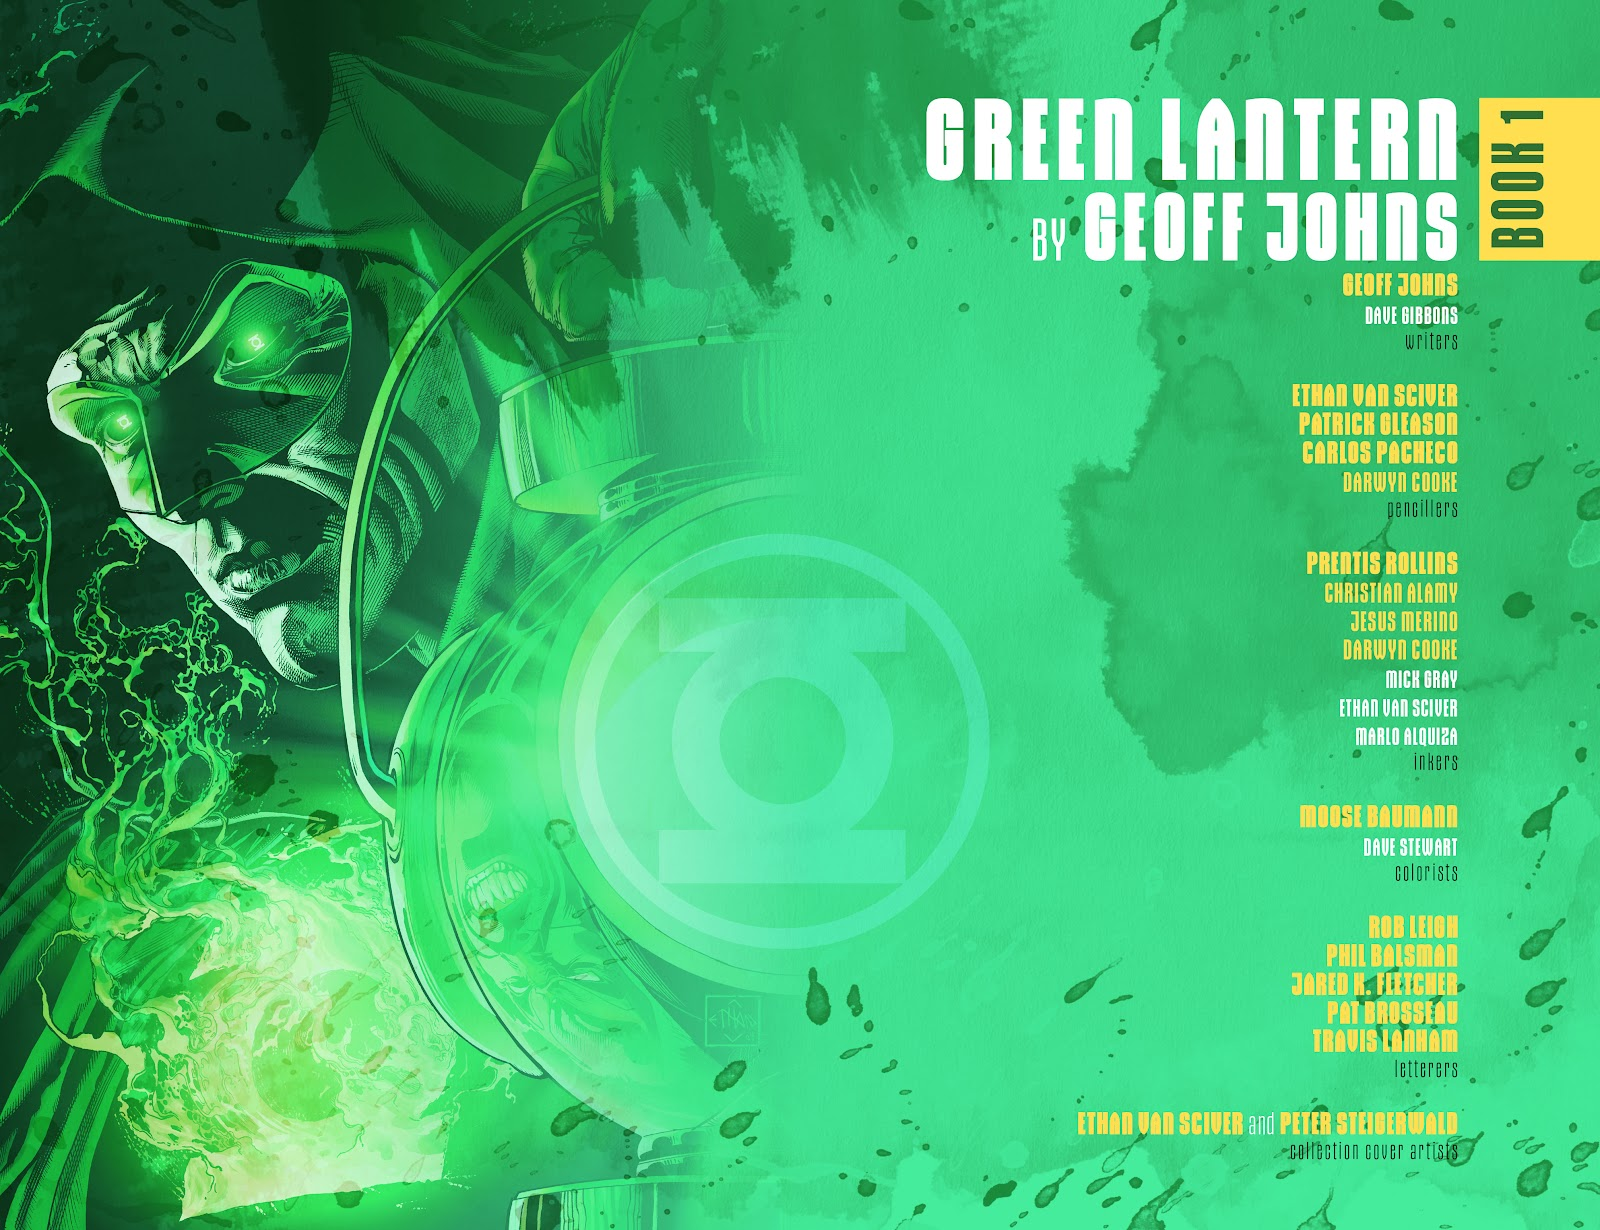 Read online Green Lantern by Geoff Johns comic -  Issue # TPB 1 (Part 1) - 3